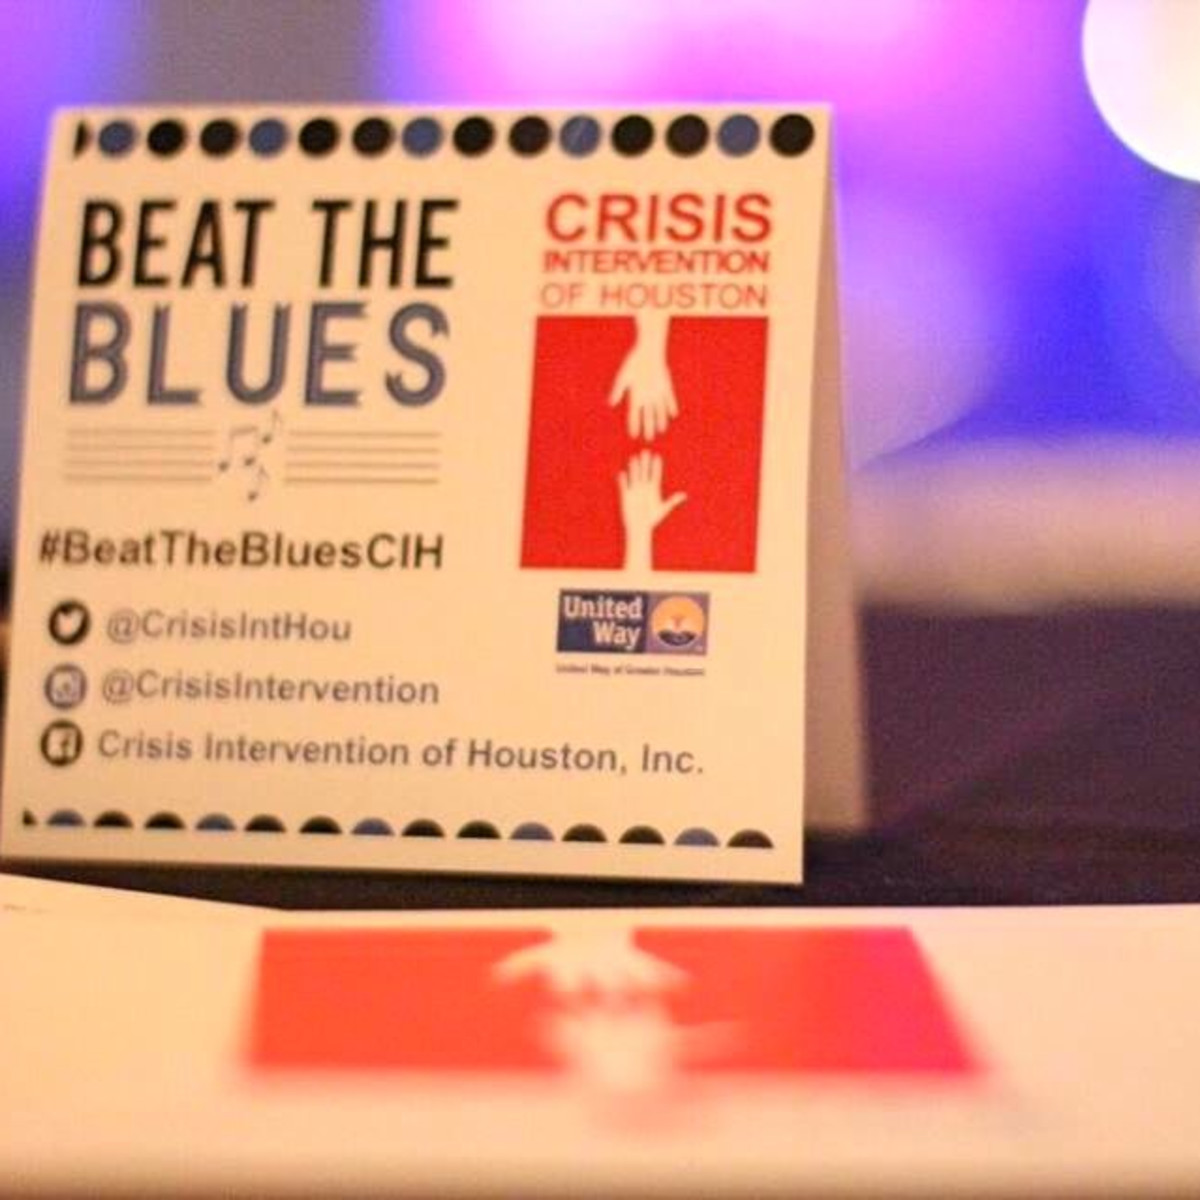 Beat the Blues Crisis Intervention